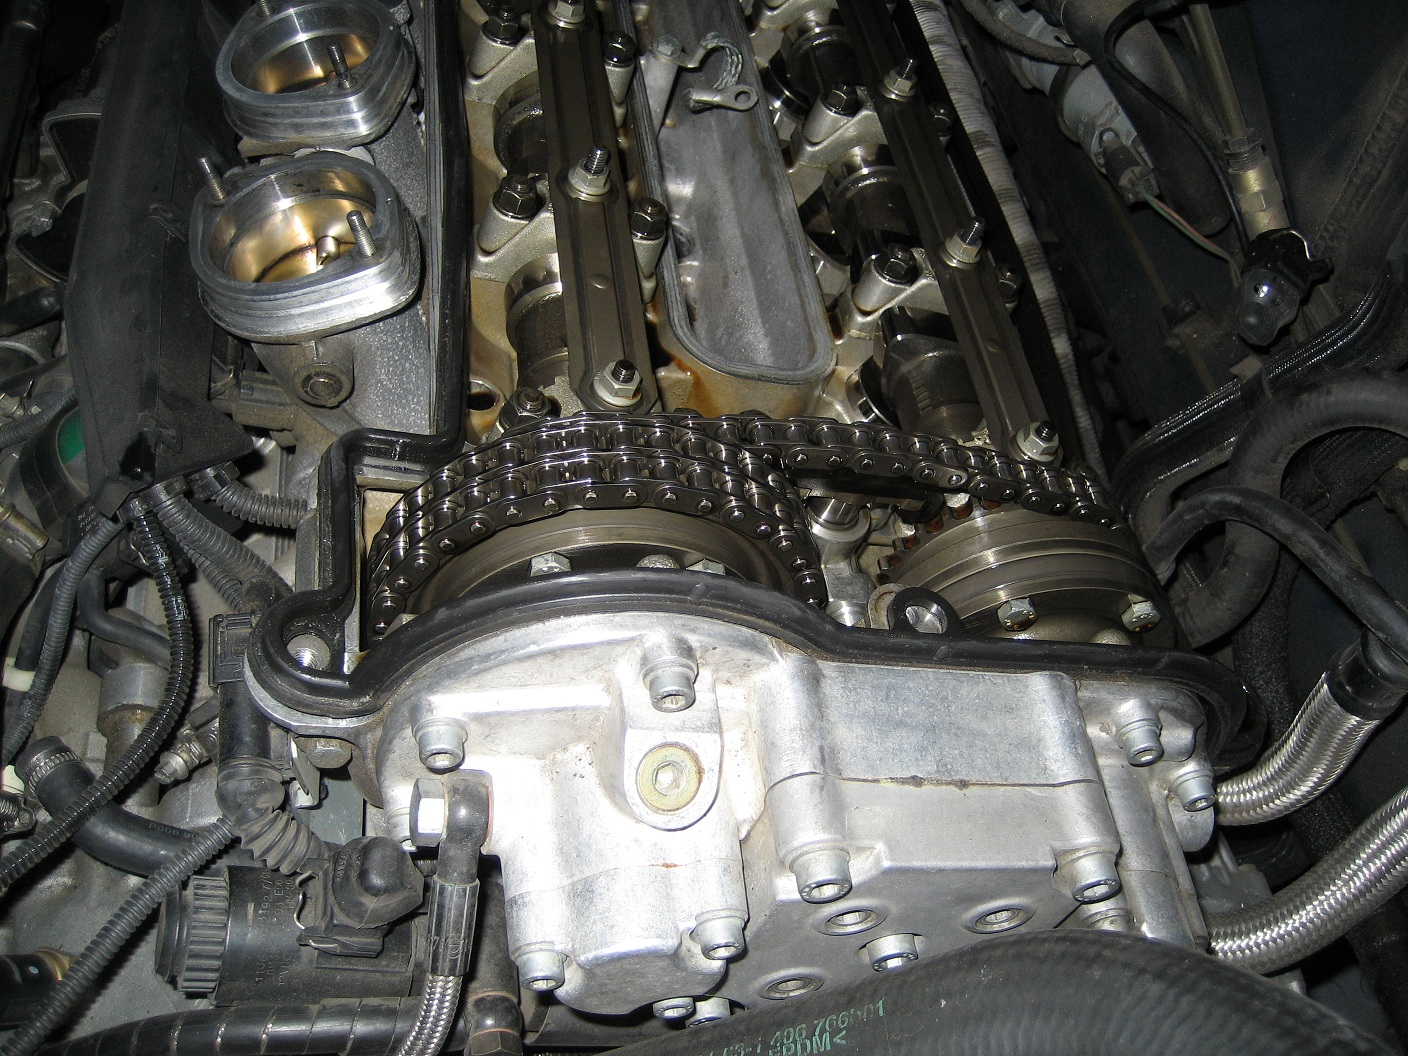 Engine making loud noise, what is it?-engine-003b.jpg